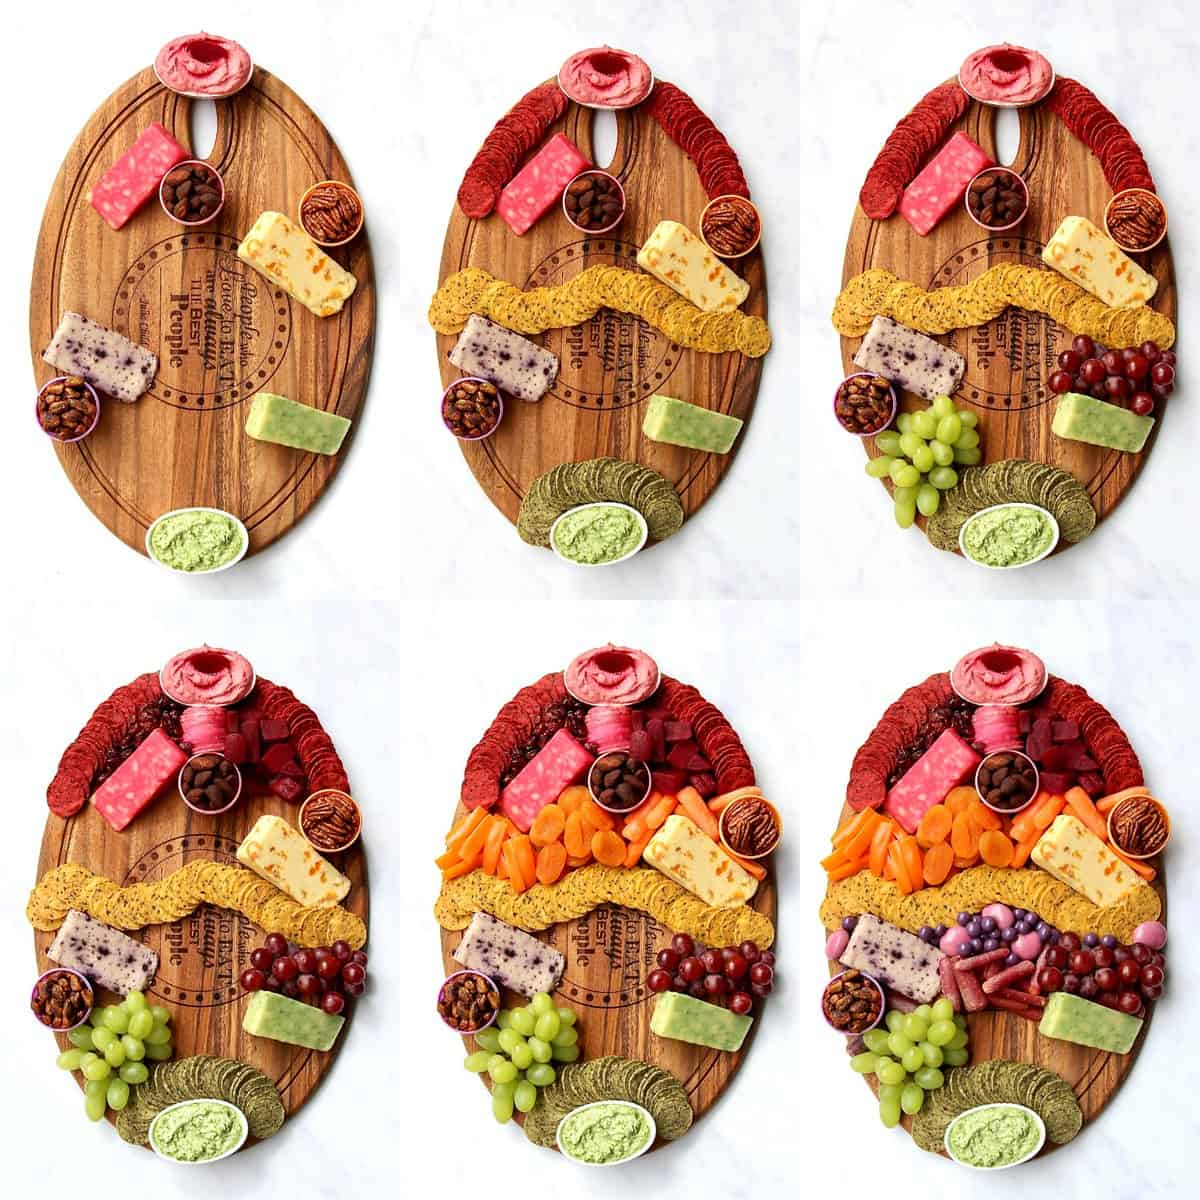 Easter Cheese Board by The BakerMama